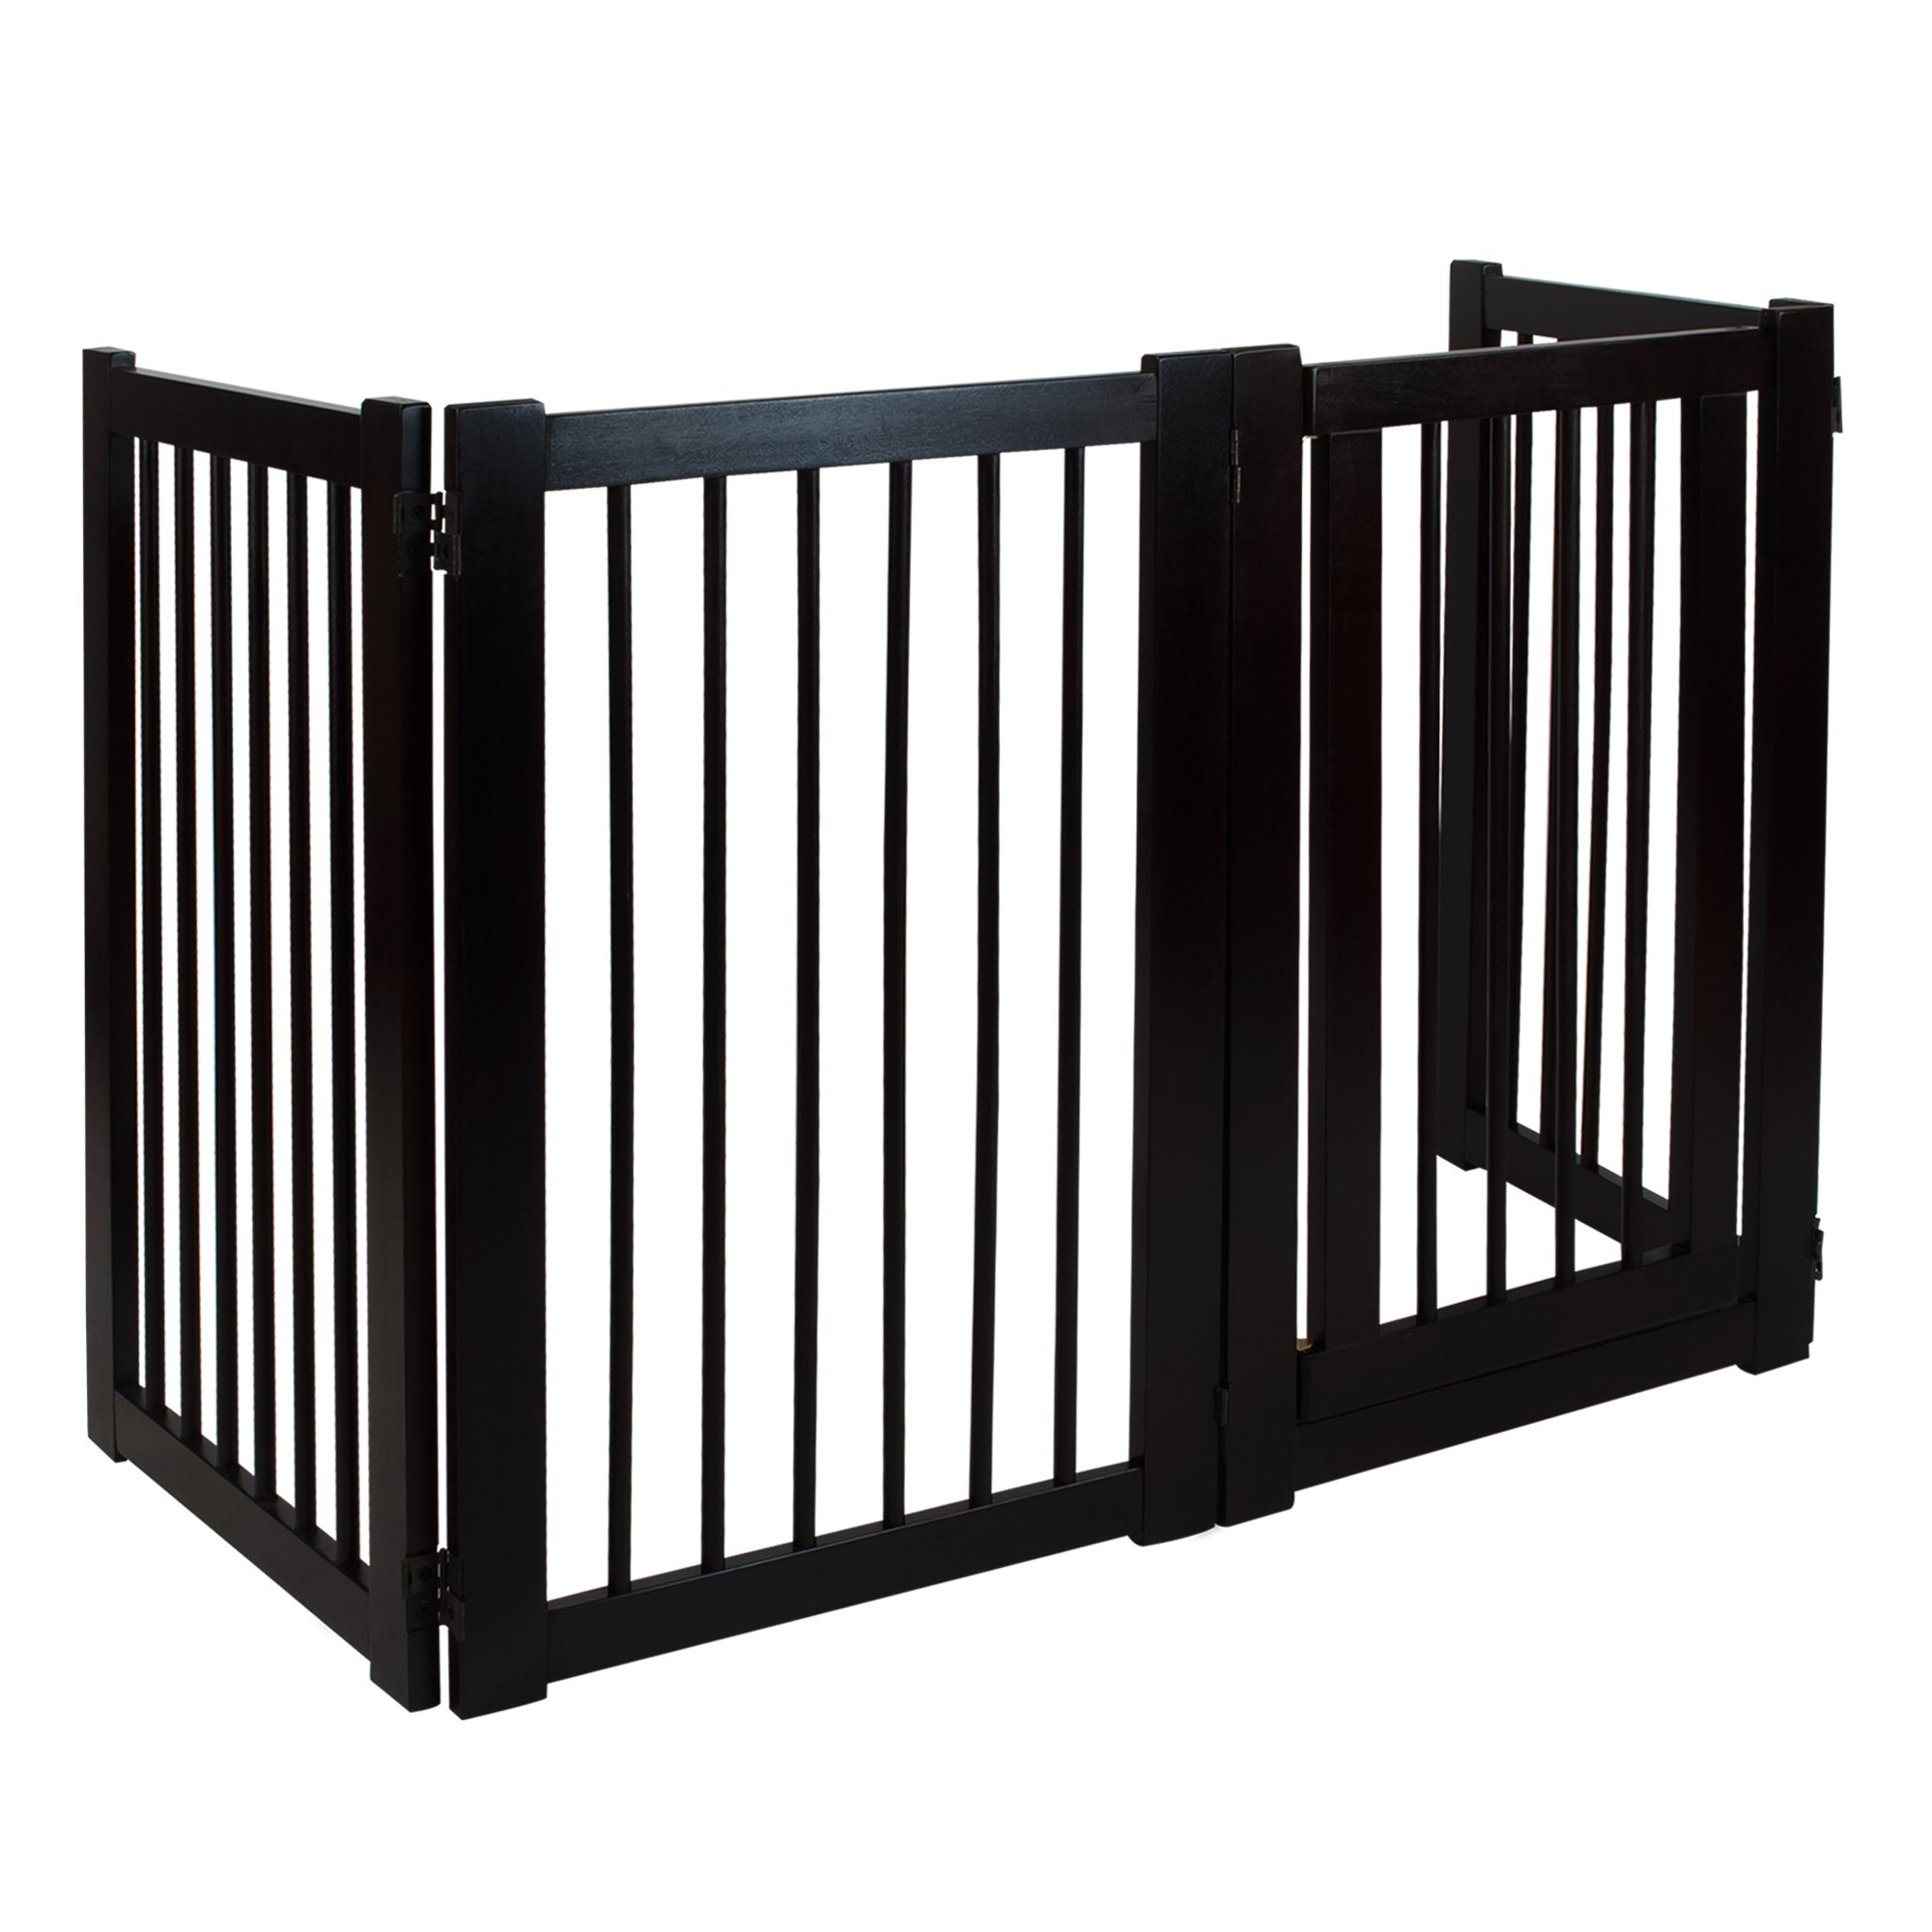 American Trails Freestanding Wooden Pet Gate with Door by American Trails